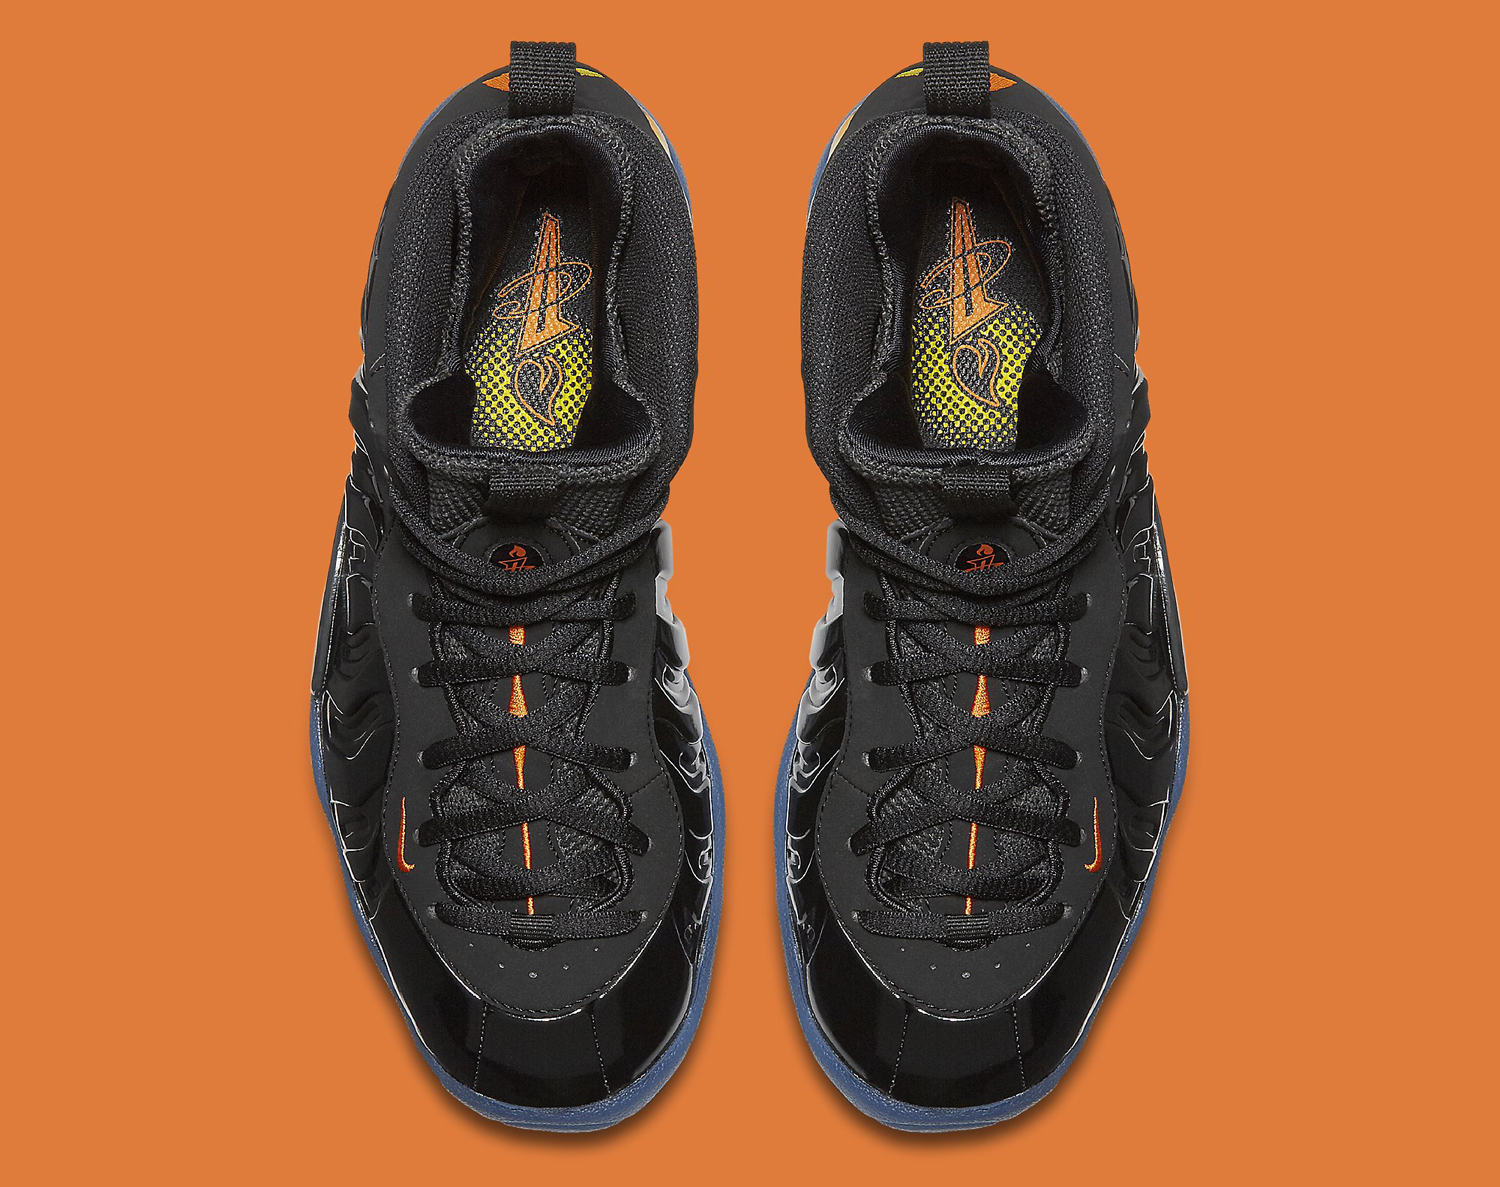 aaa9c3de7b0 Halloween Nike Foamposite 846077-002 Top